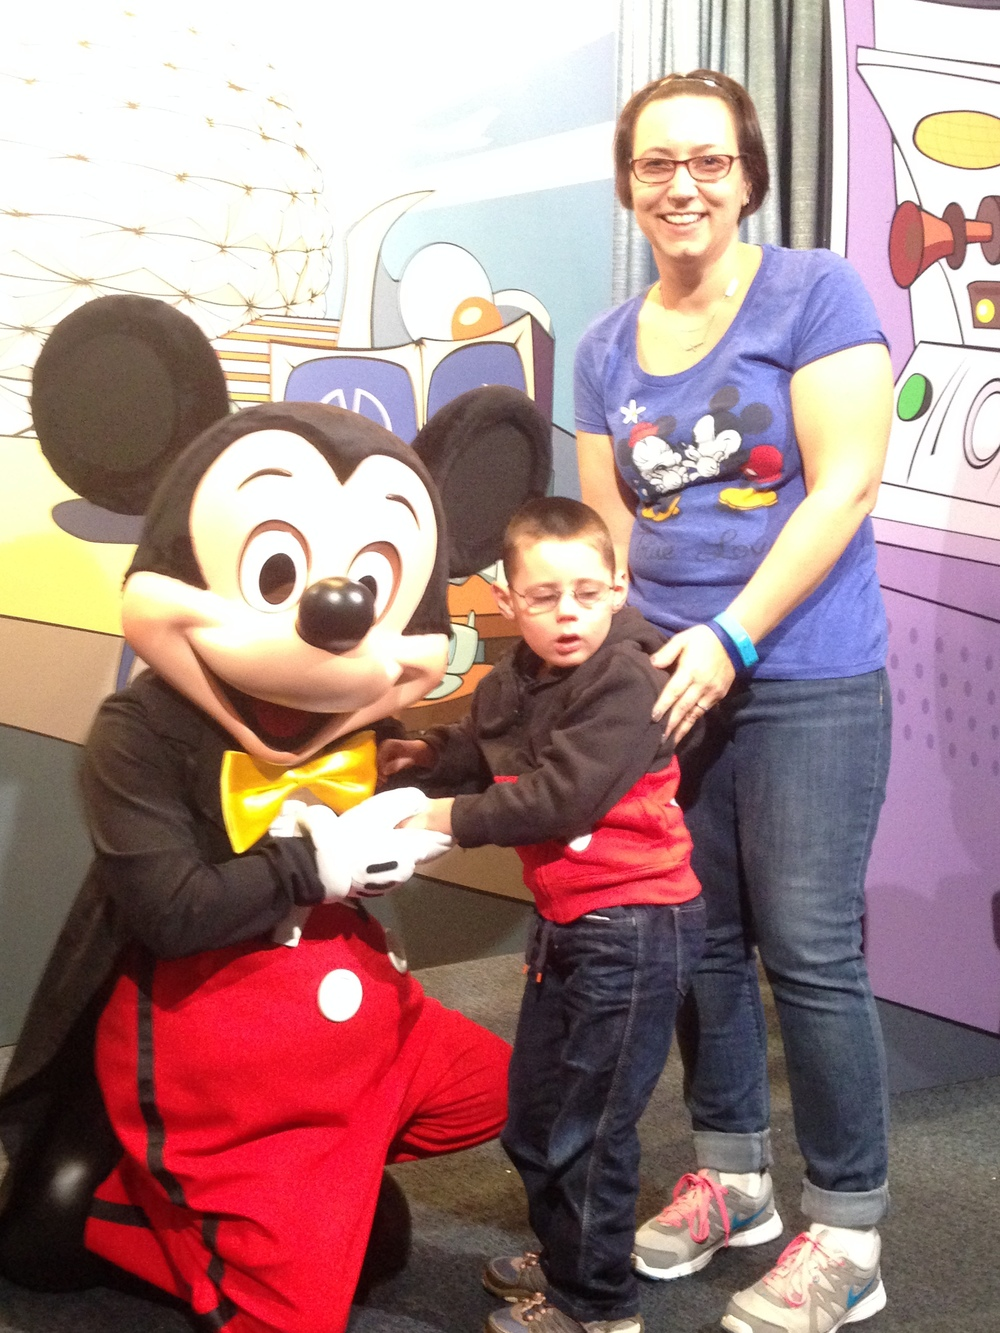 In January 2015, we took Jackson to Disney to meet his idol, Mickey Mouse